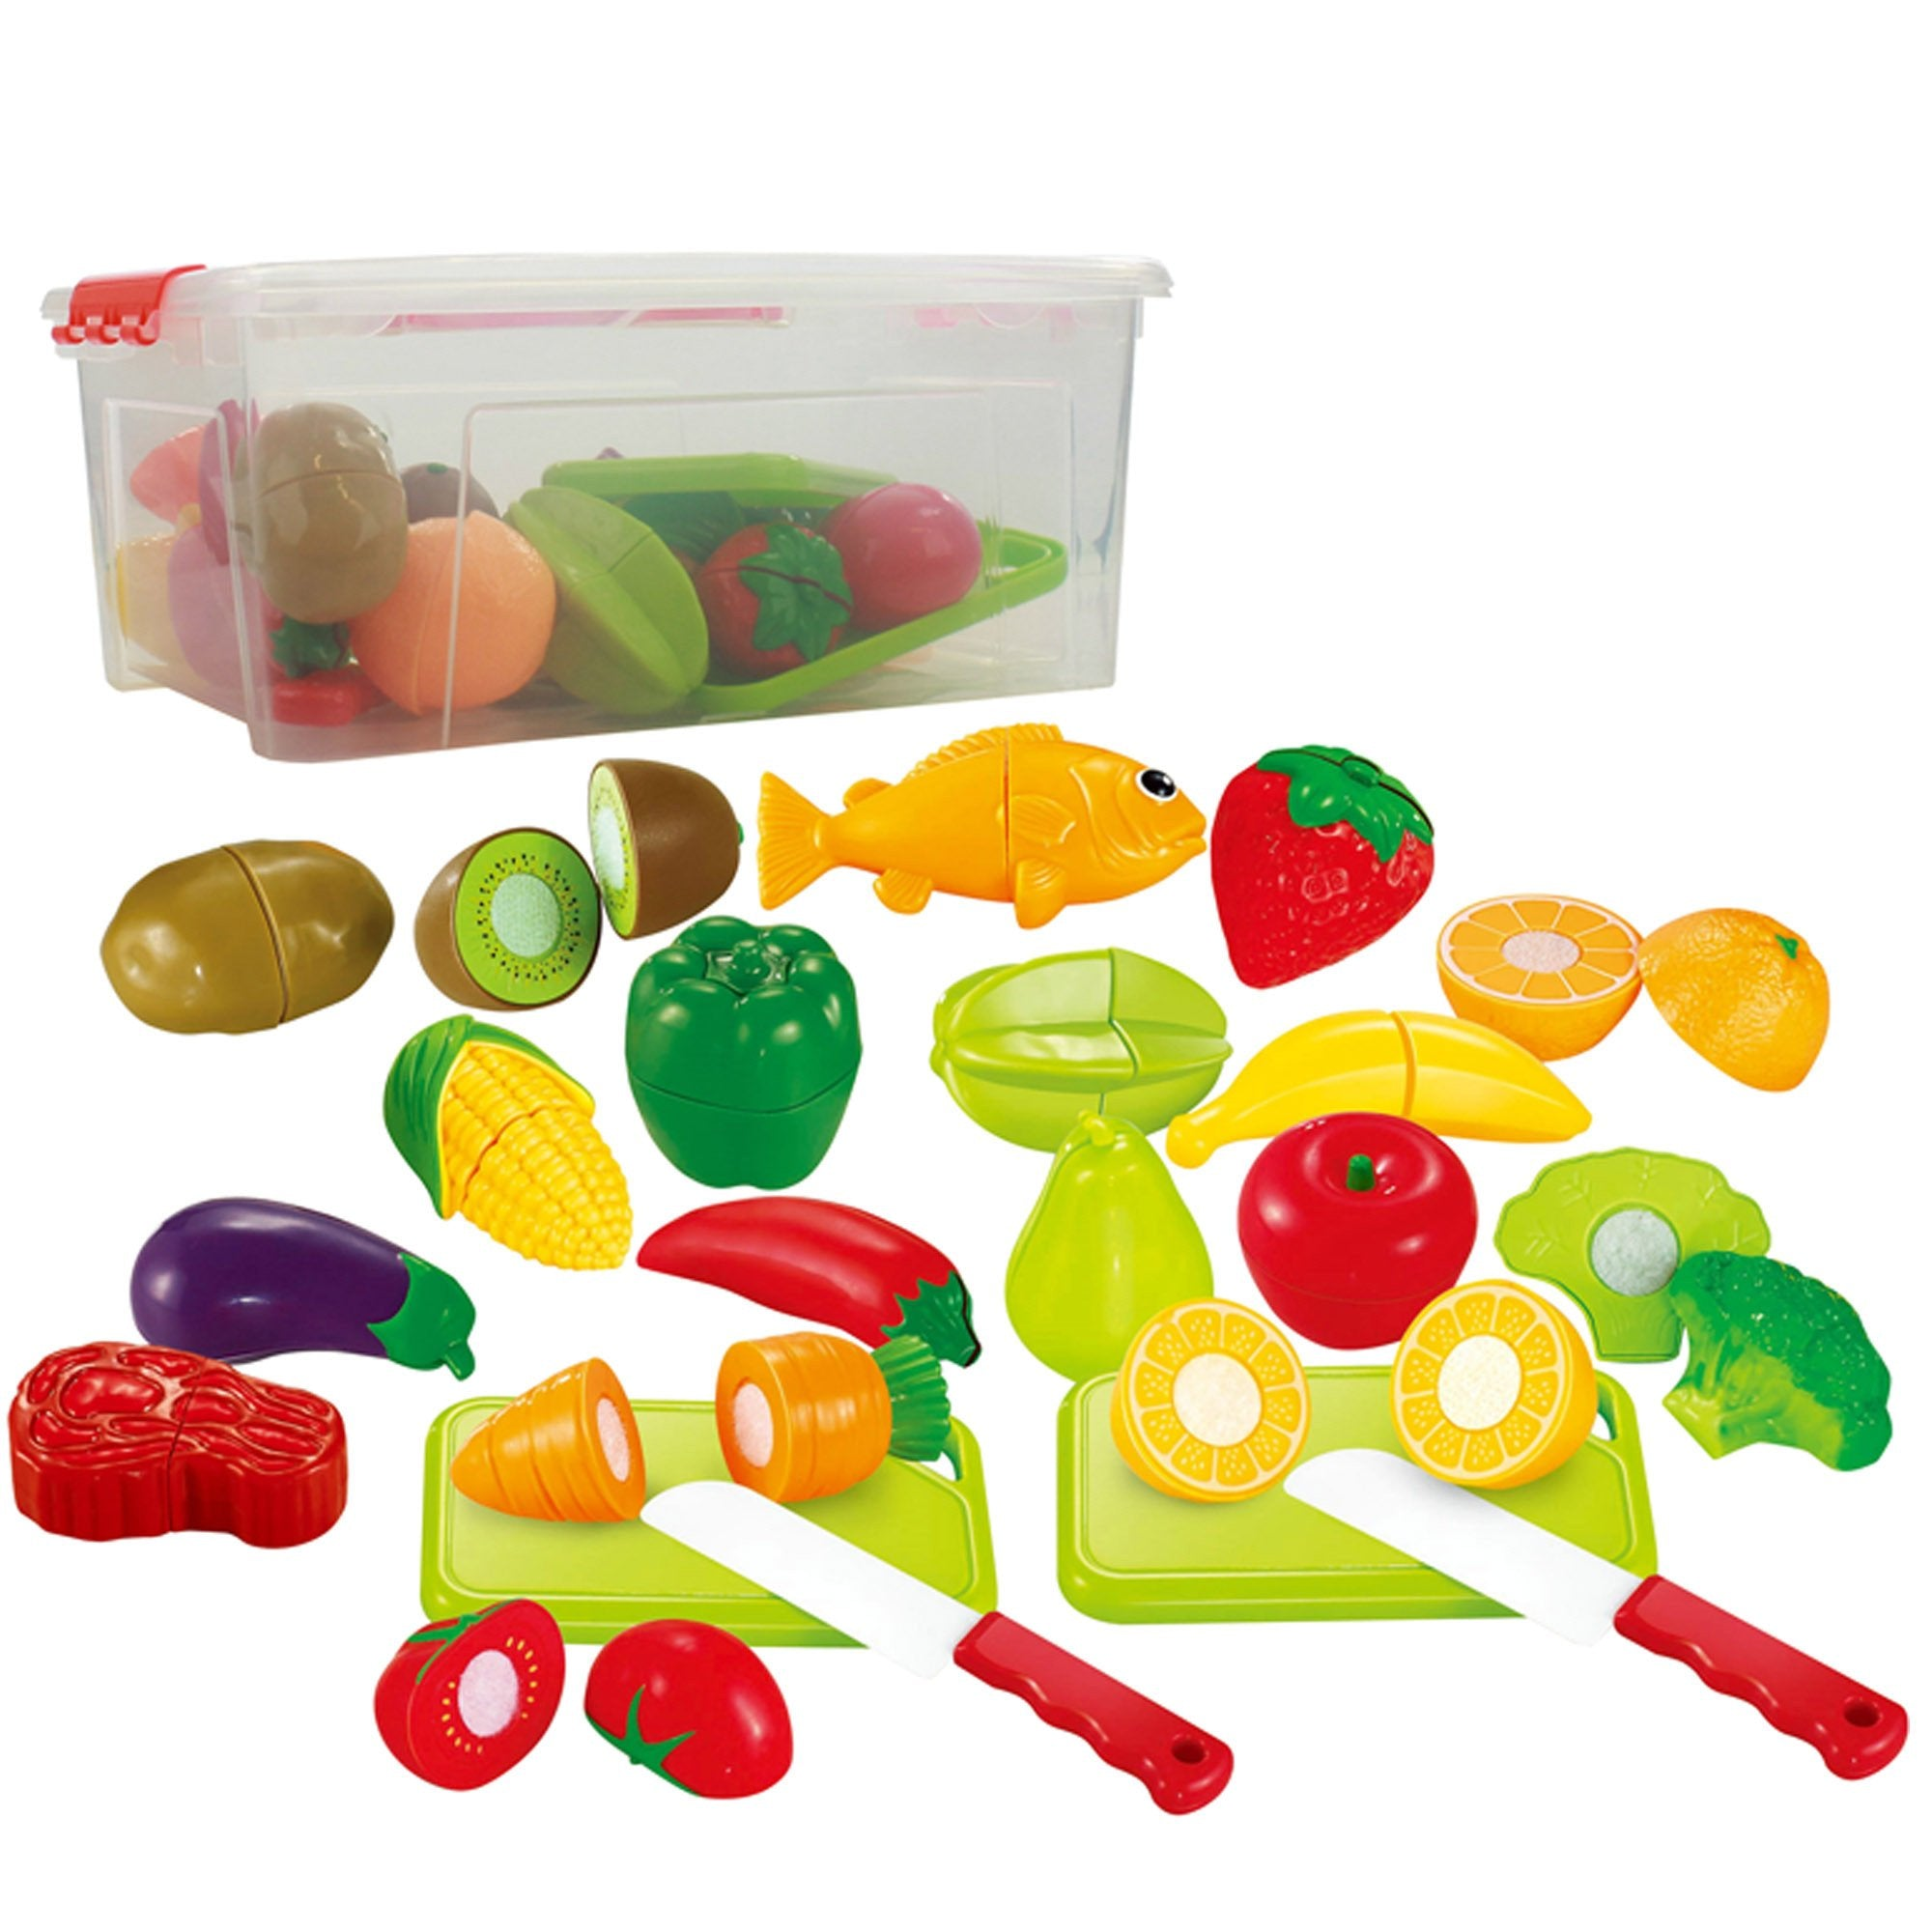 Pretend Food Playset For Kids, Fruits ,Vegetables, Poultry, Cutting Board, Knife And More! Set Includes A Storage Container (35 piece)